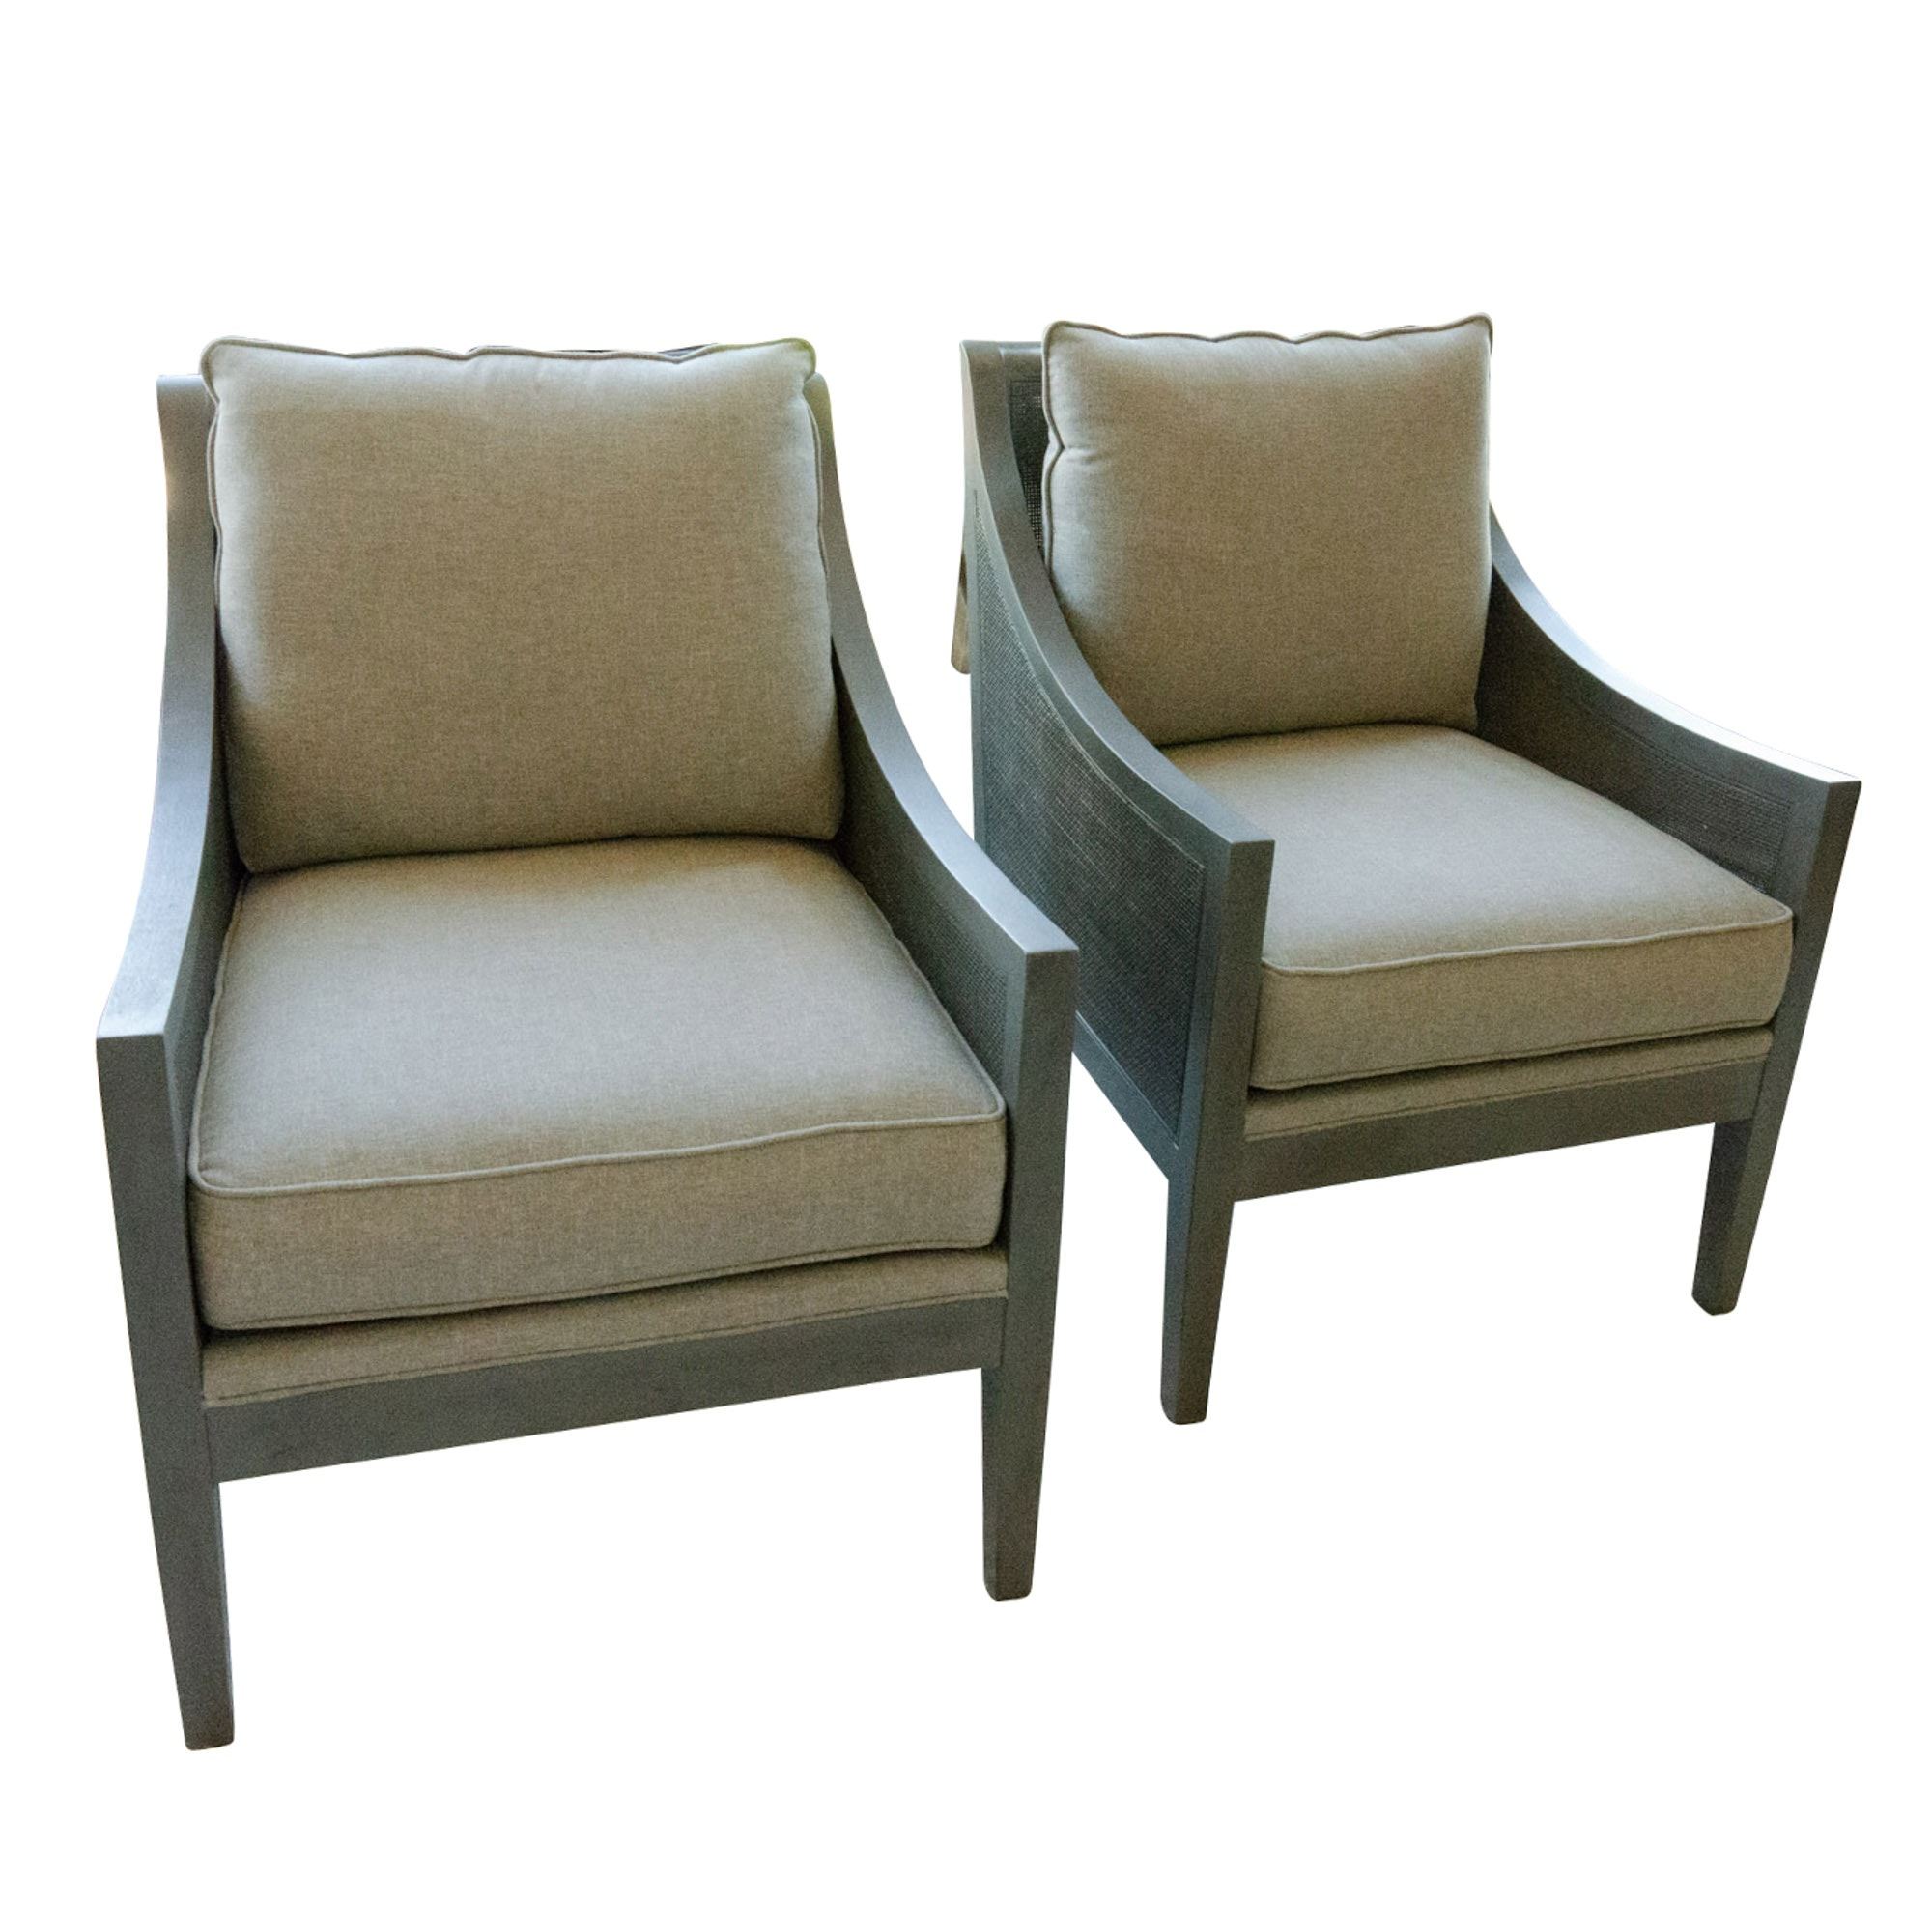 Pair of Contemporary Wooden Armchairs with Linen Cushions and Caned Side Panels